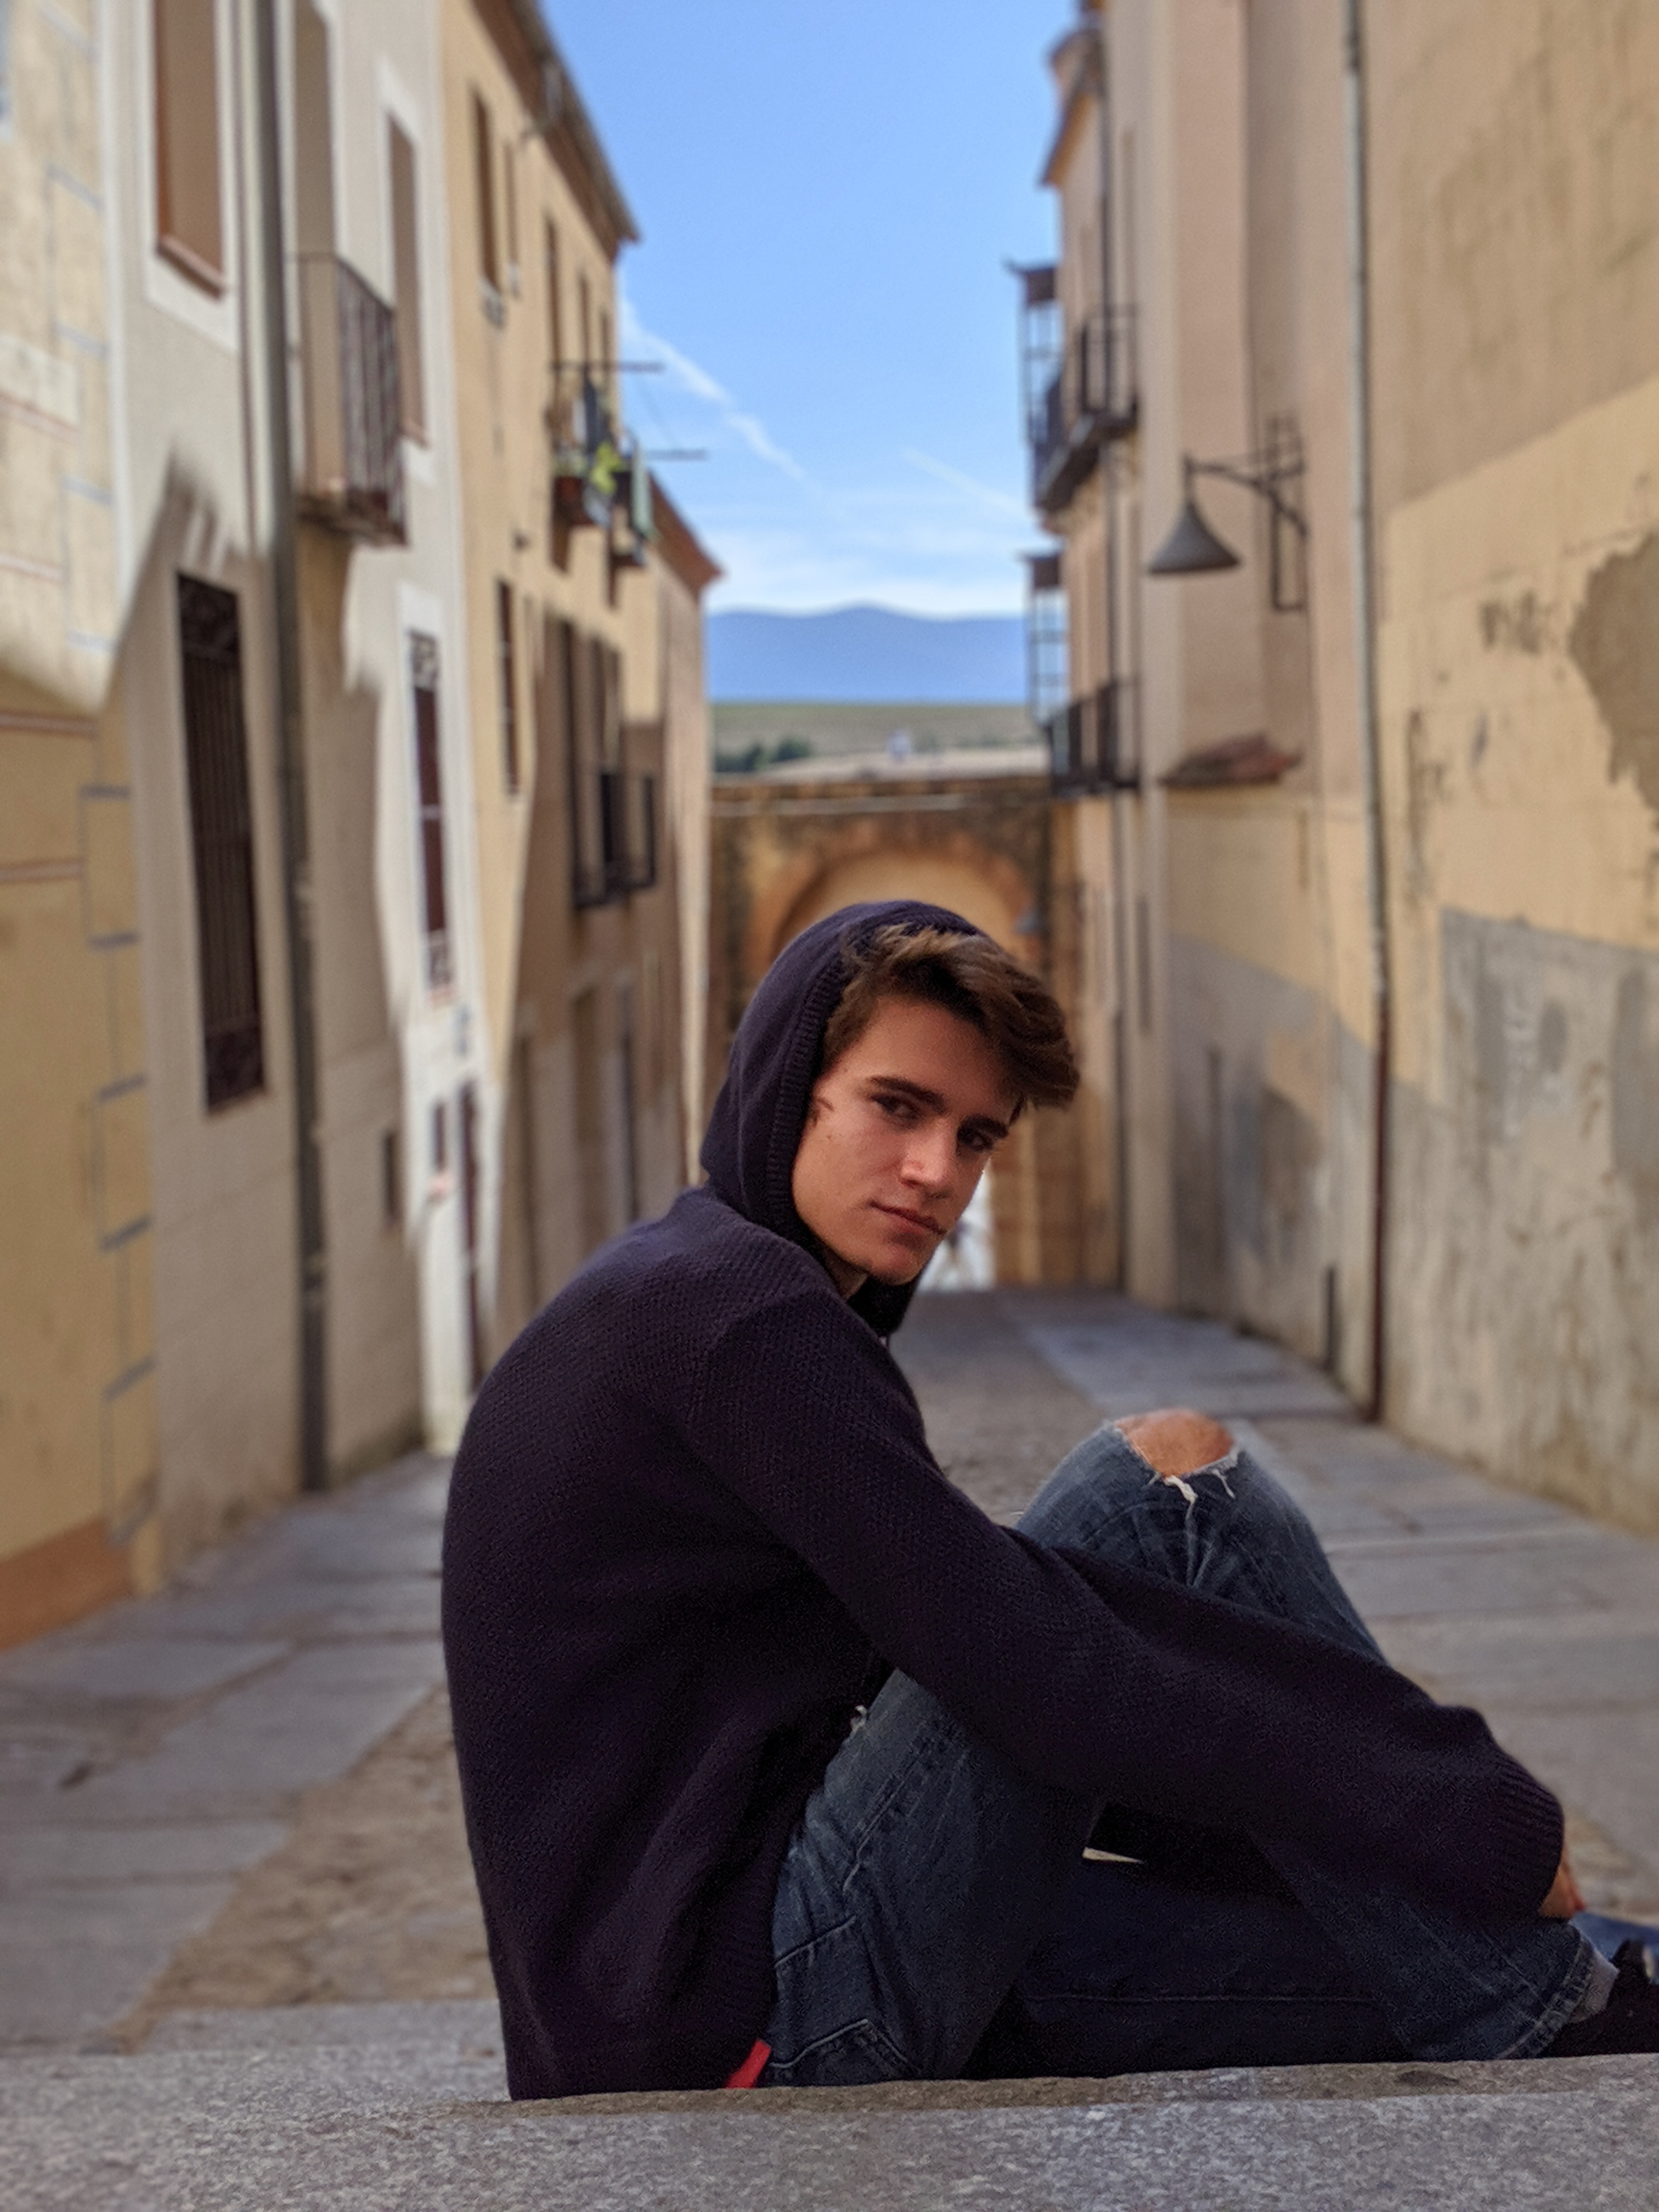 Beniamino Nardin seen sitting in a cobbled street with his knees to his chest, looking at the camera